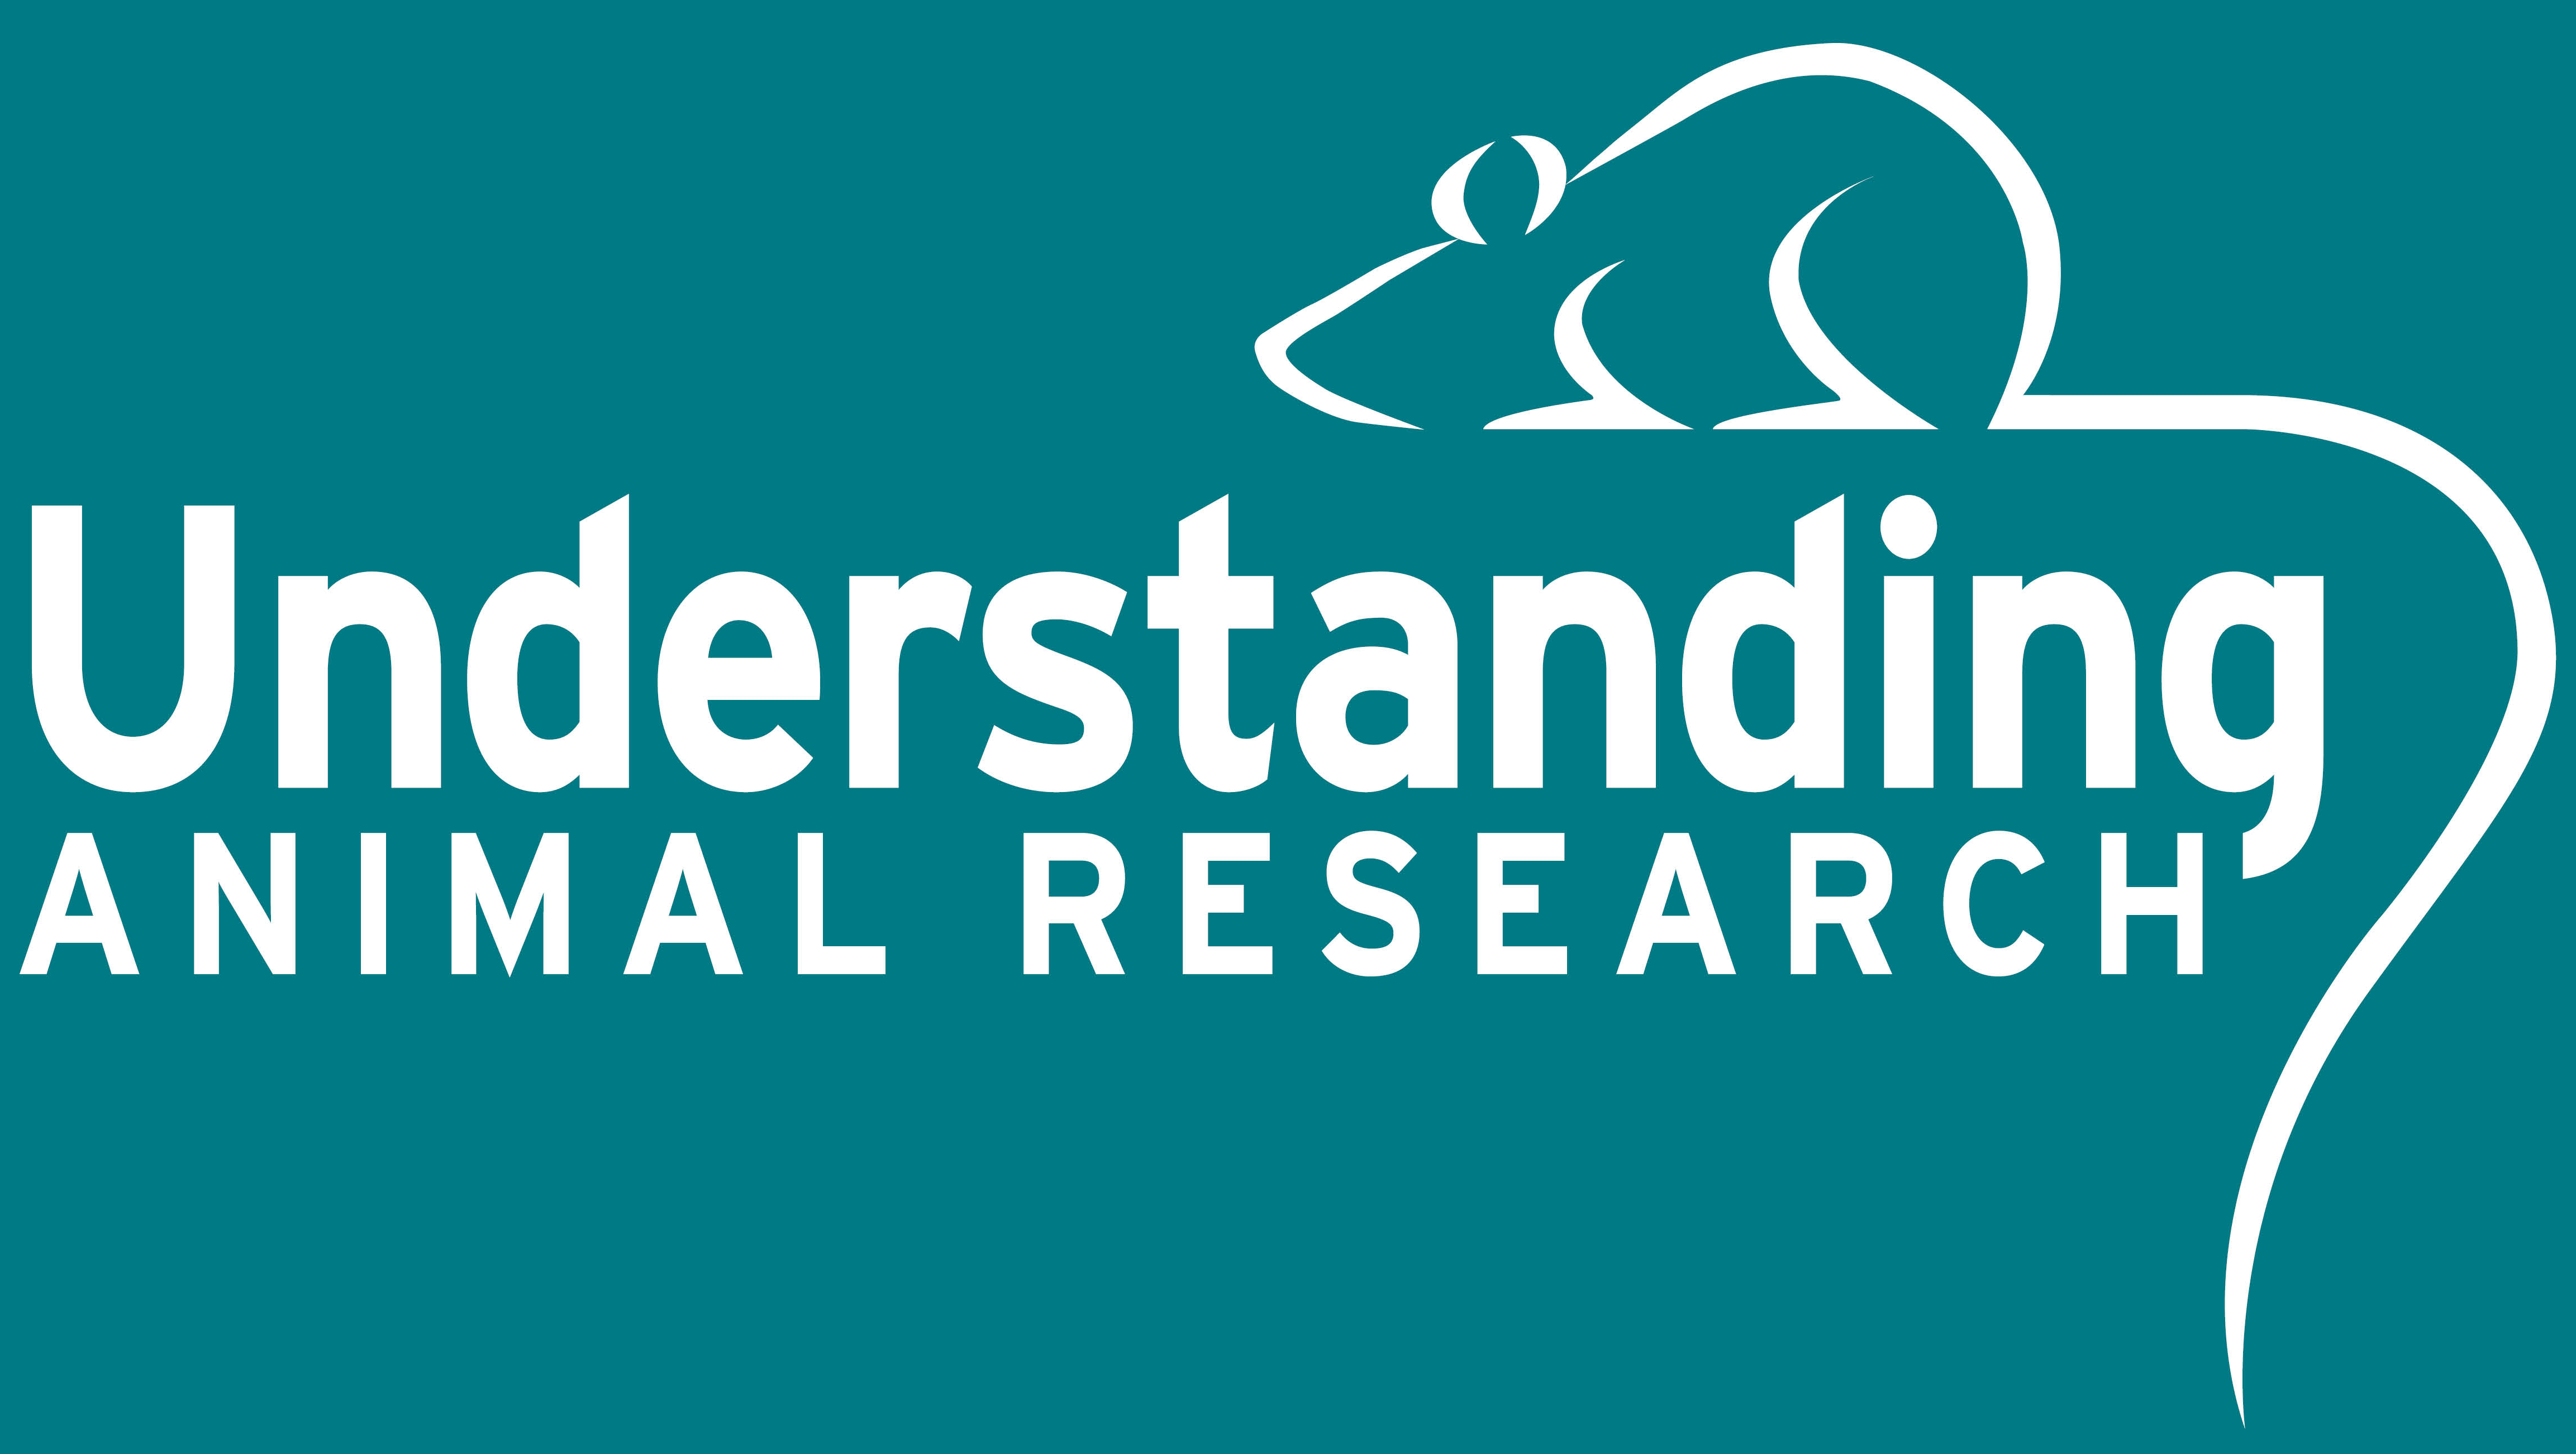 Concordat on Openness on Animal Research in the UK